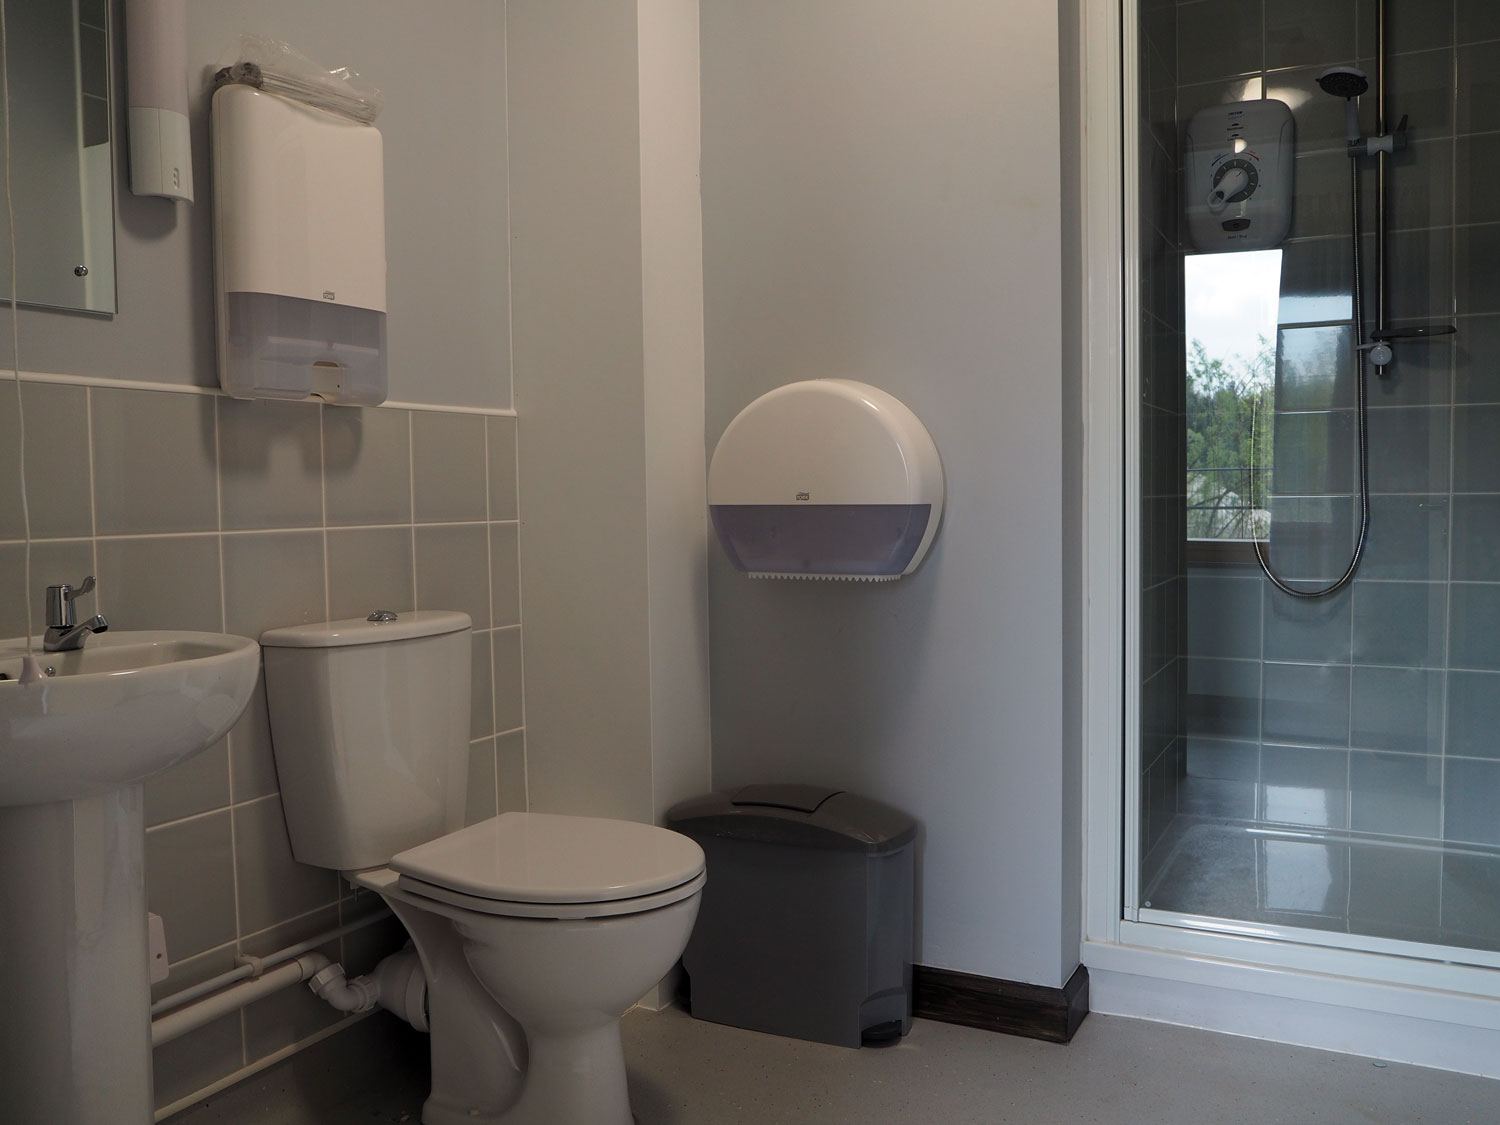 The bathroom in the Woodlands building